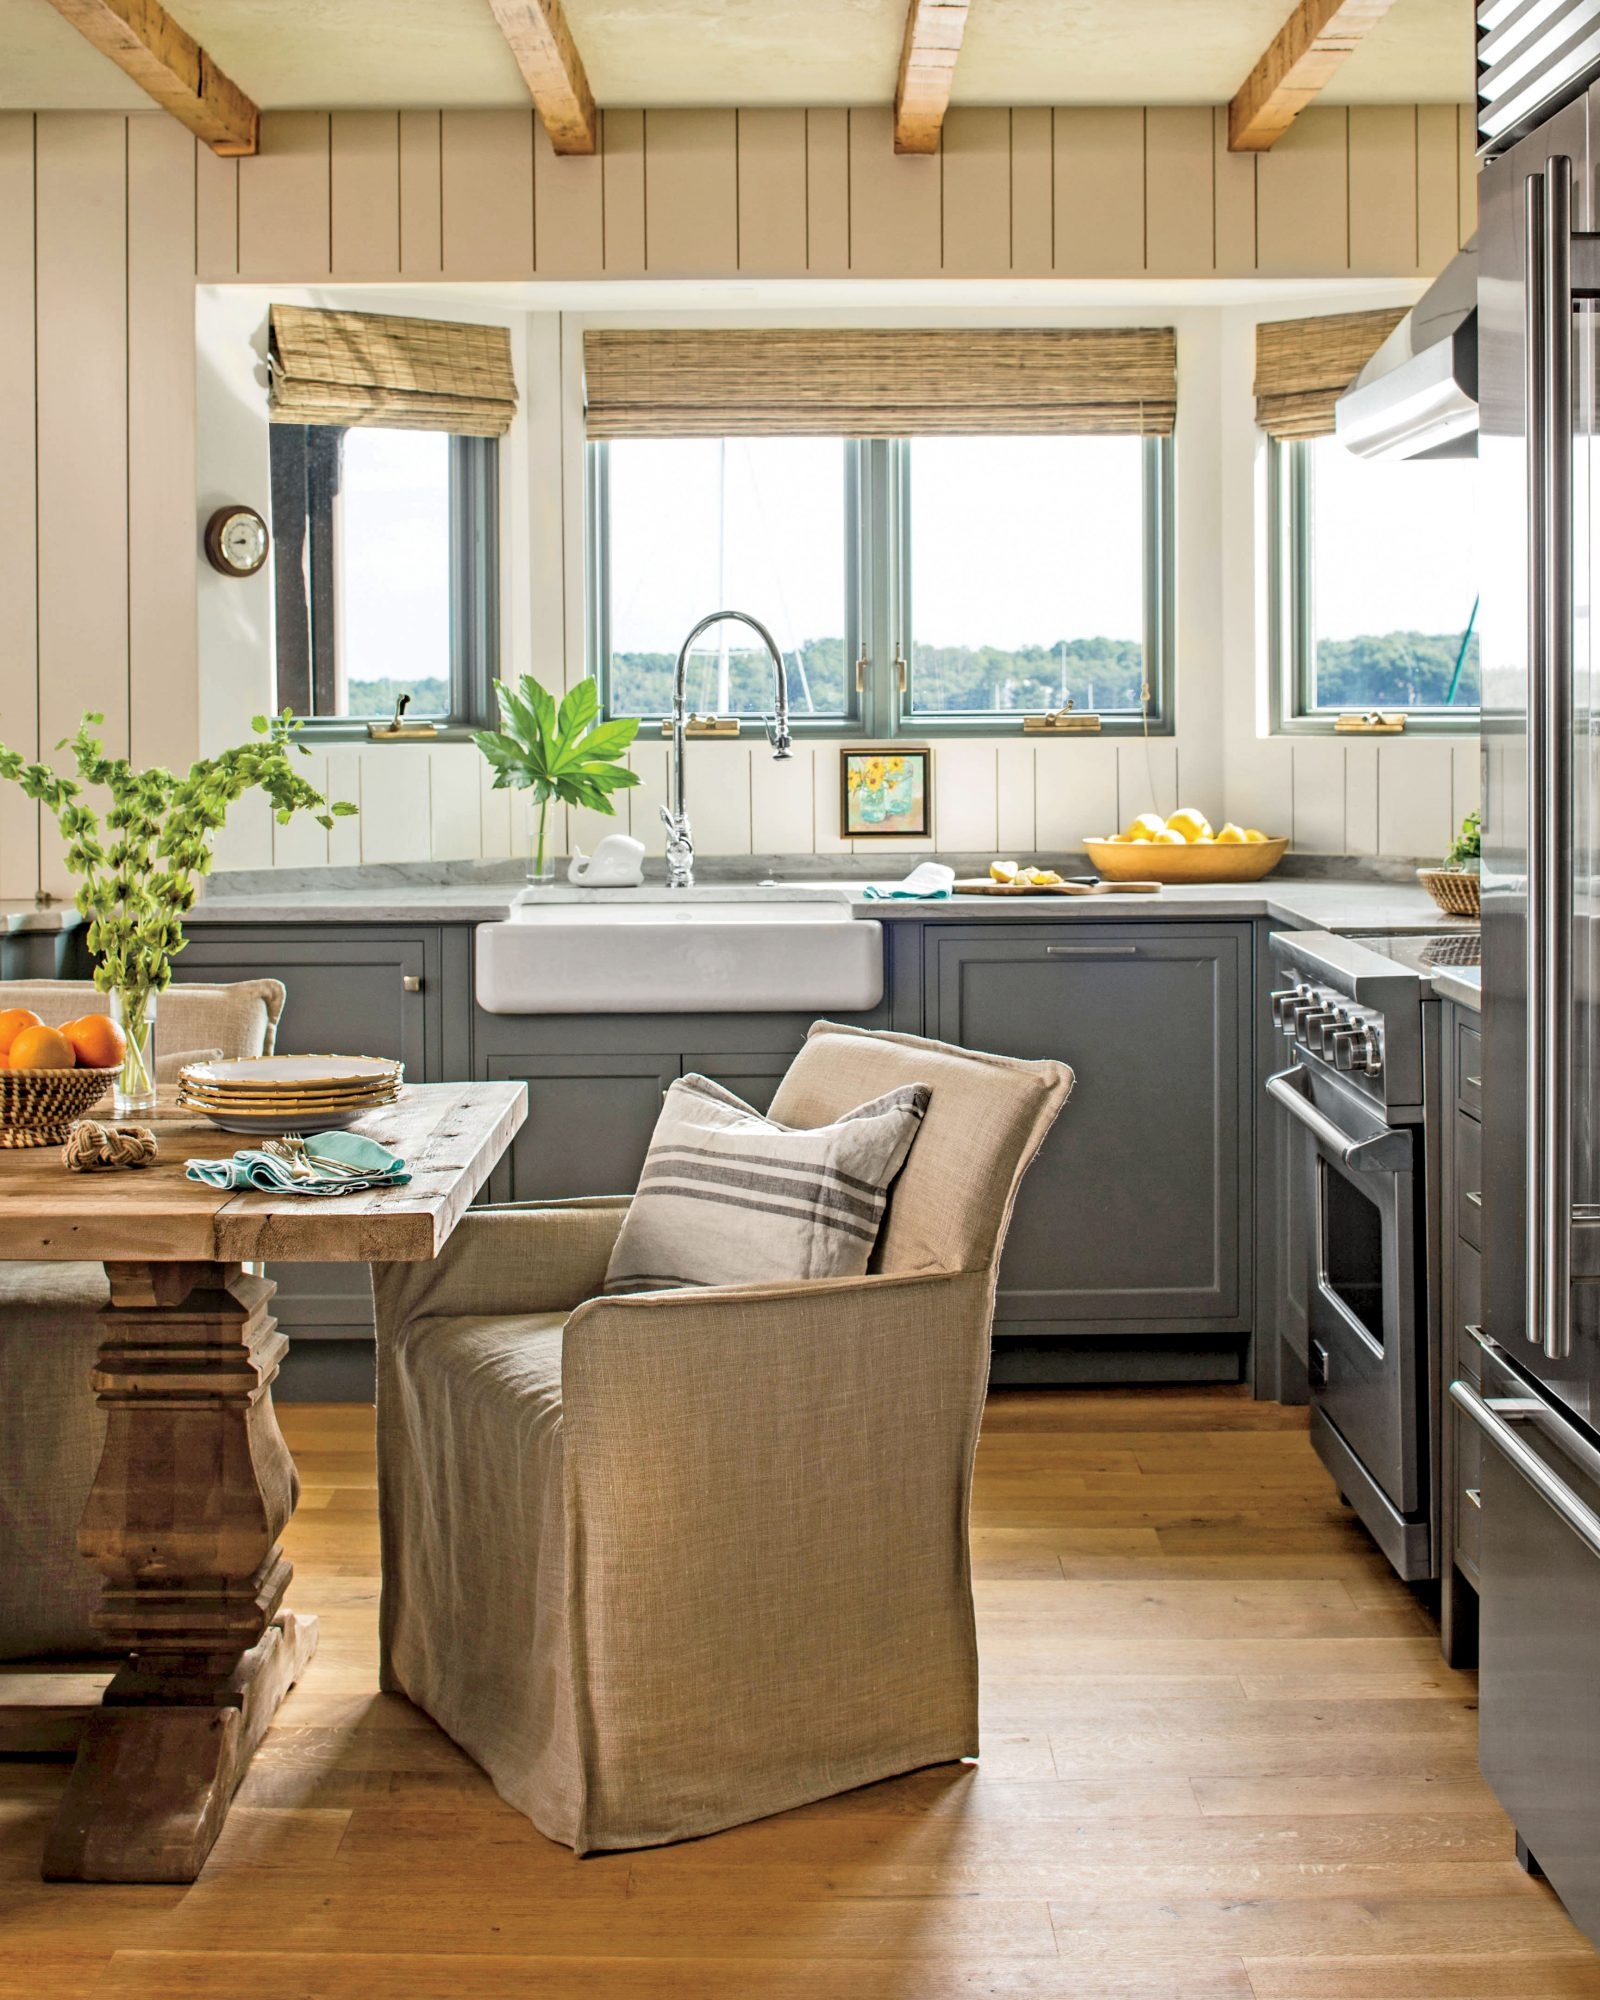 Gray and Neutral Kitchen